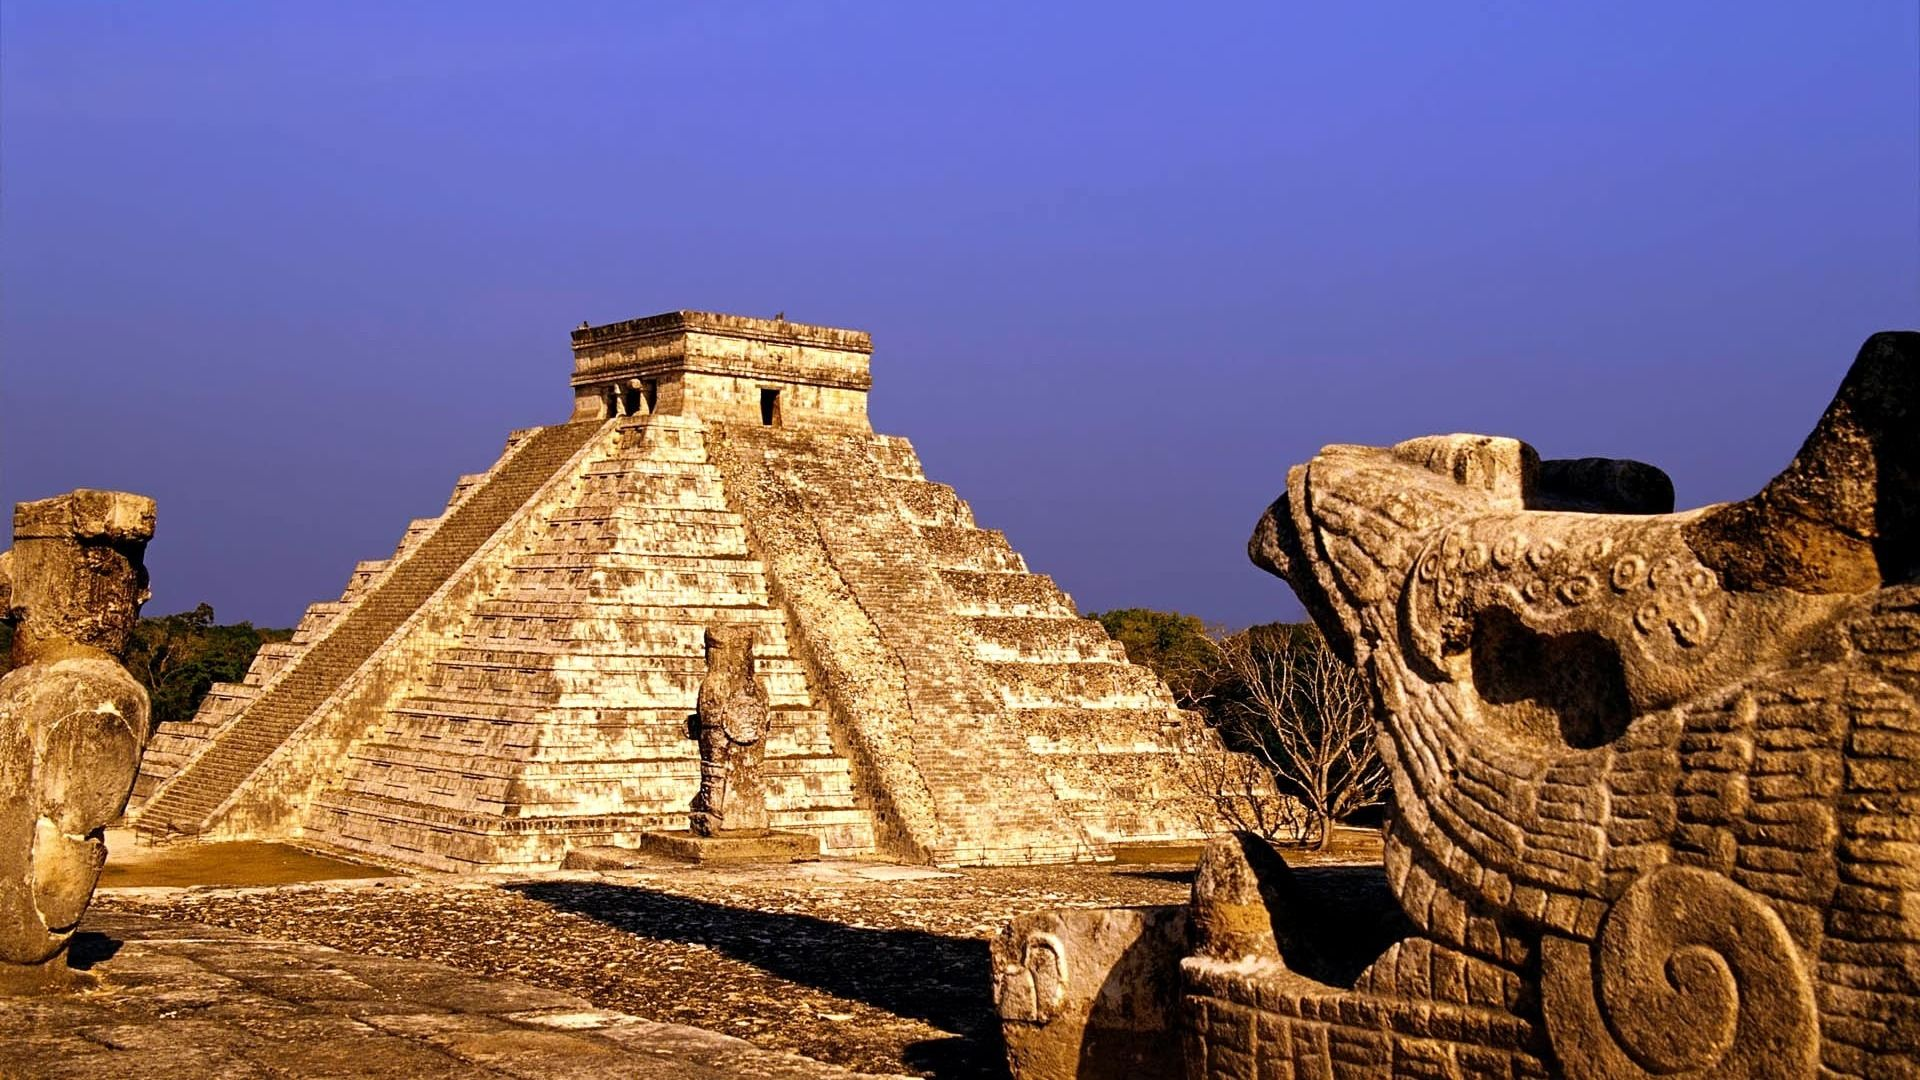 Mexico Wallpapers HD Desktop Backgrounds Images and